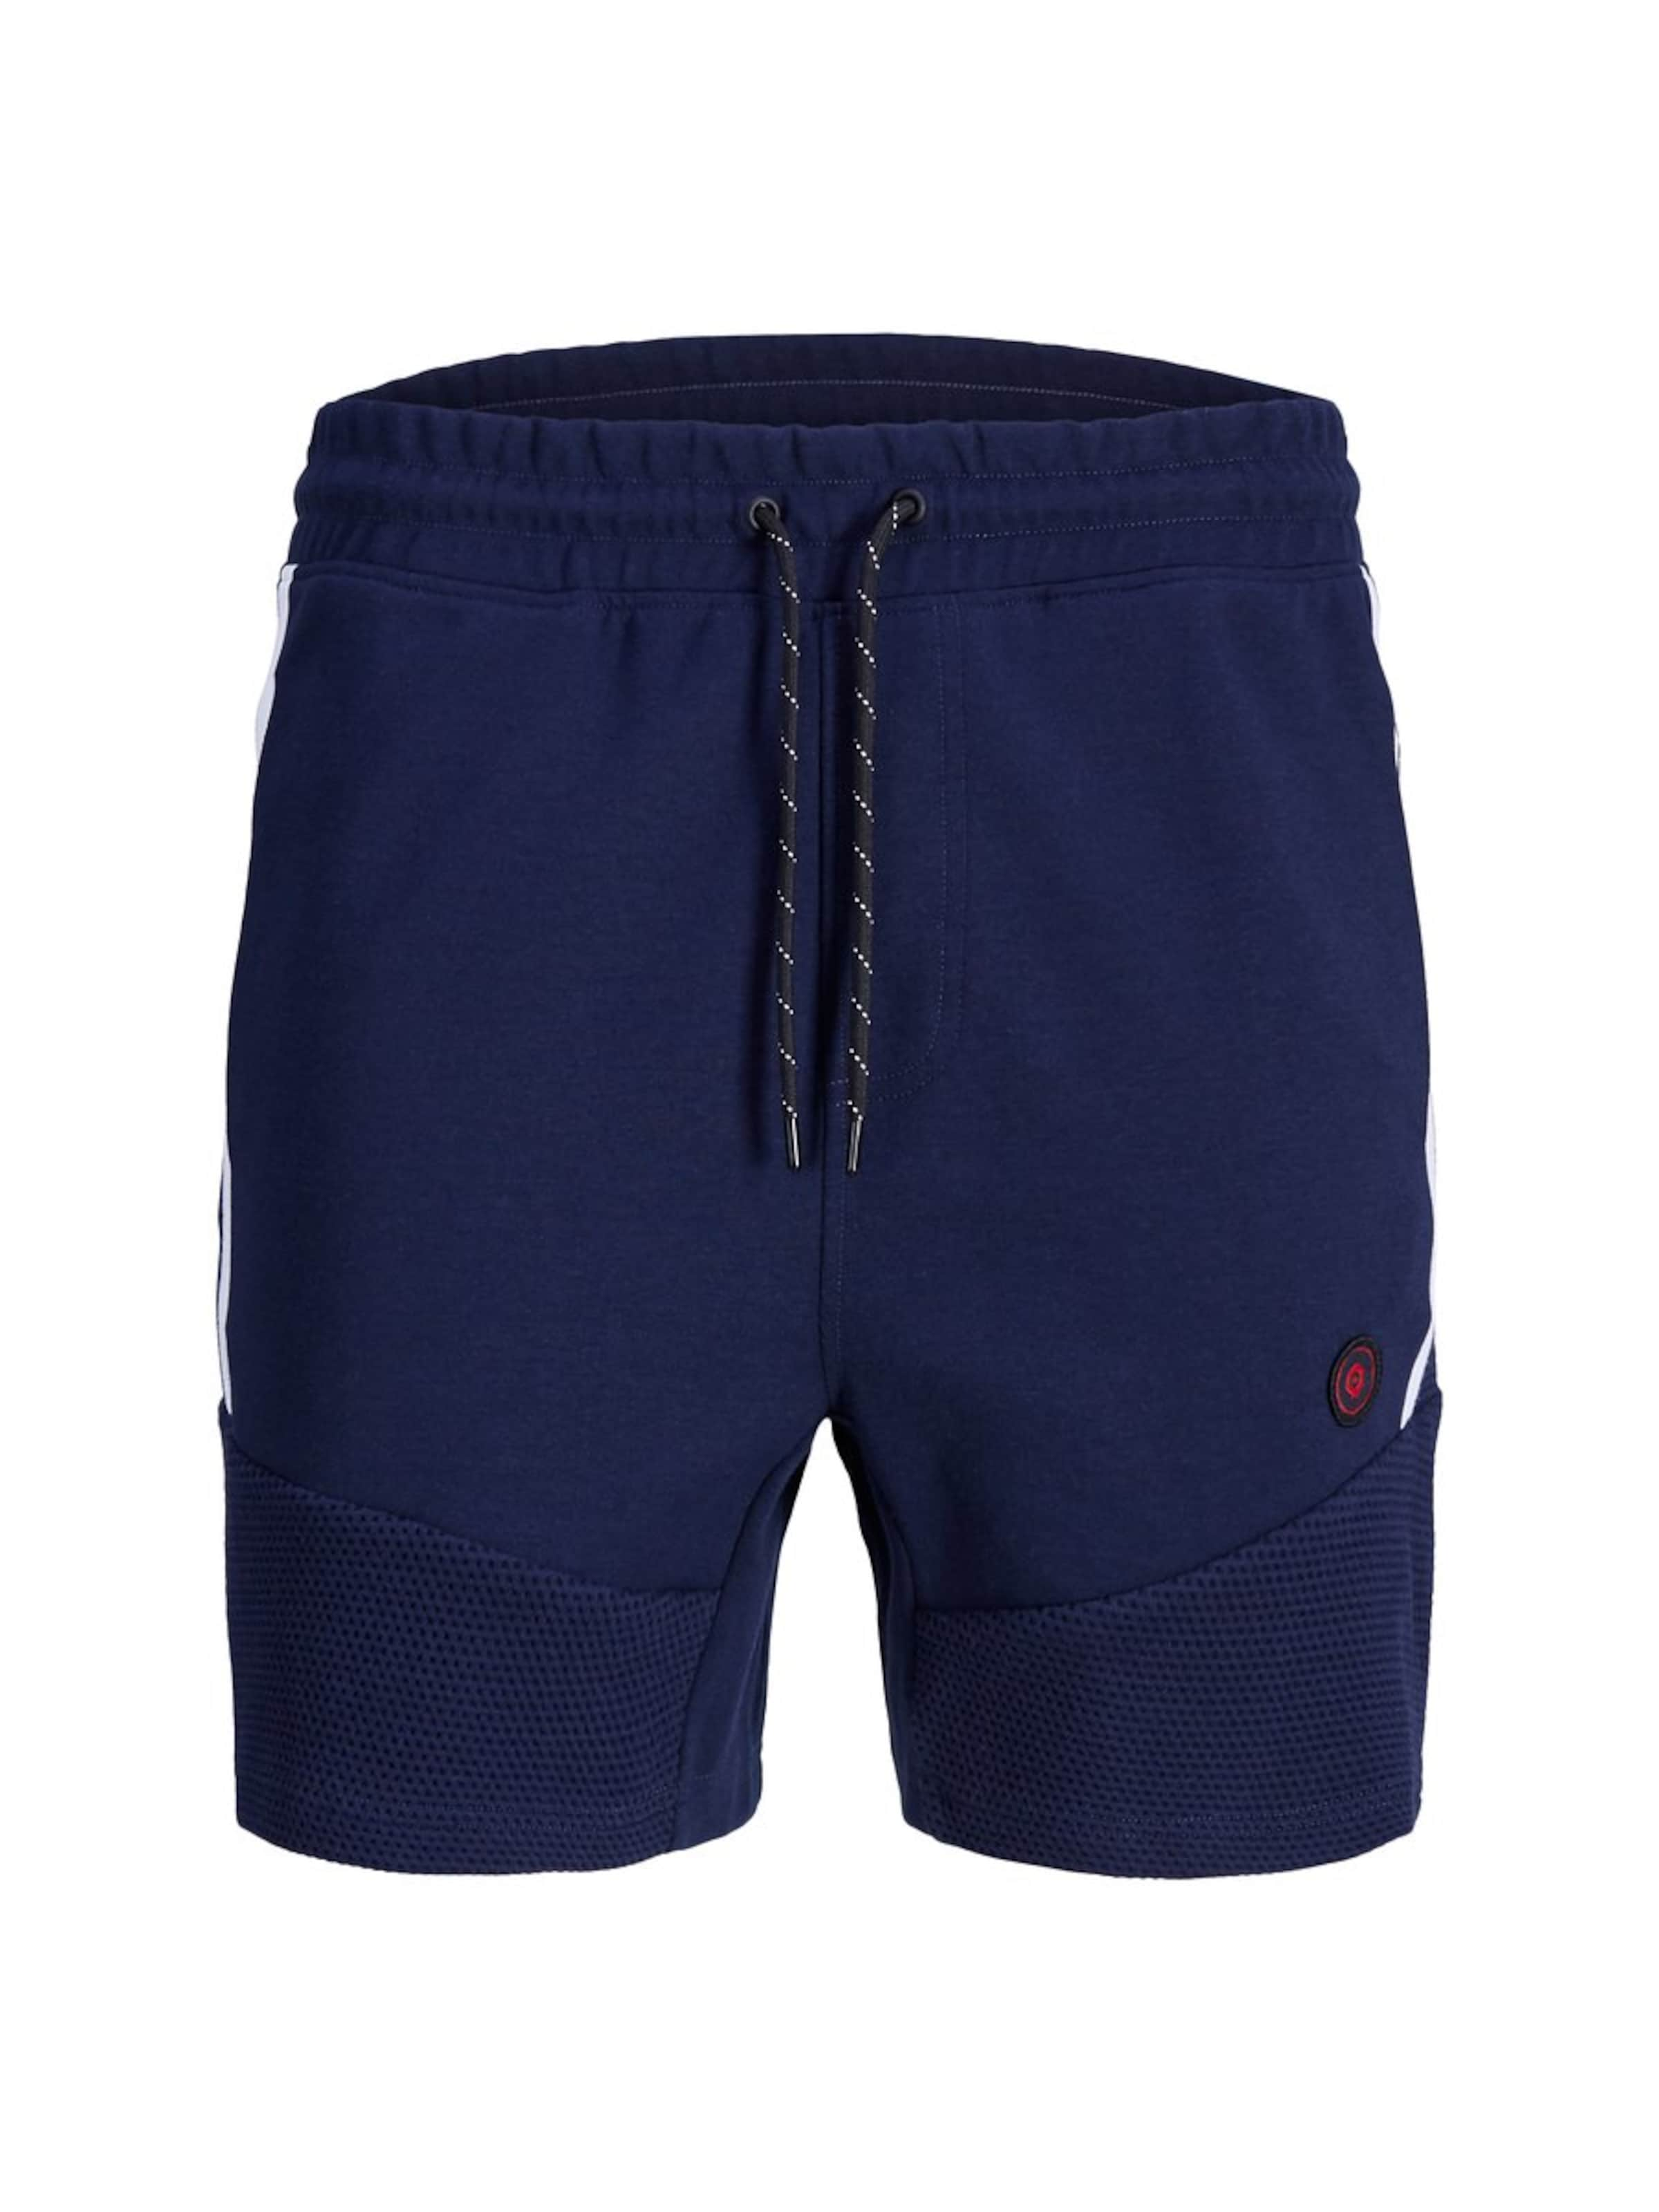 Jones Jackamp; In Jackamp; Sweatshorts MarineWeiß pqSUzMV